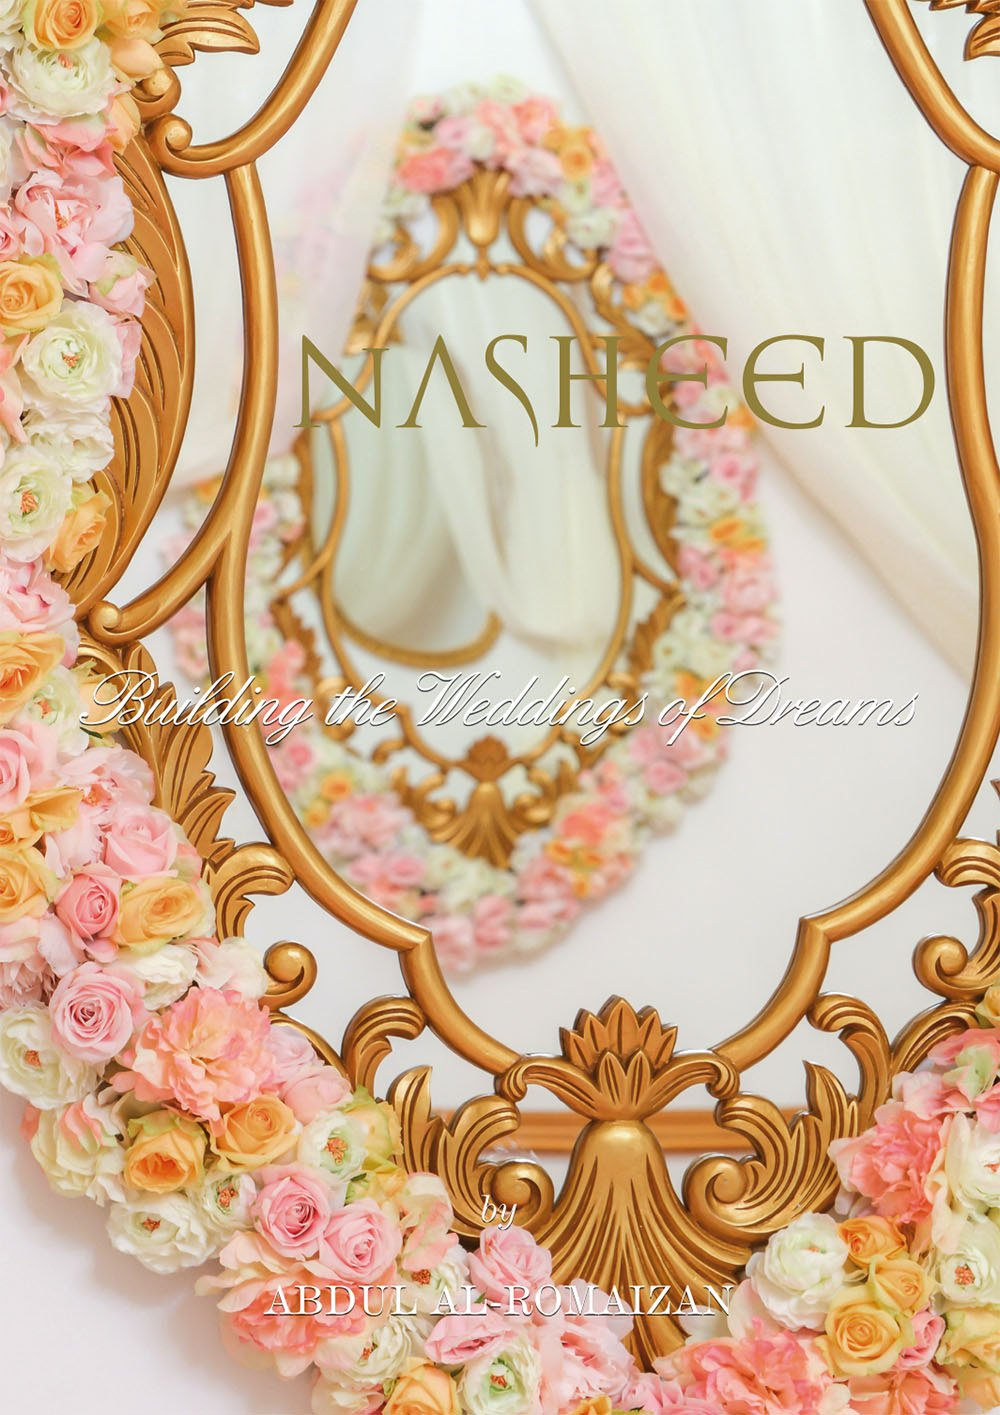 NASHEED: Building the Weddings of Dreams by Nasheed